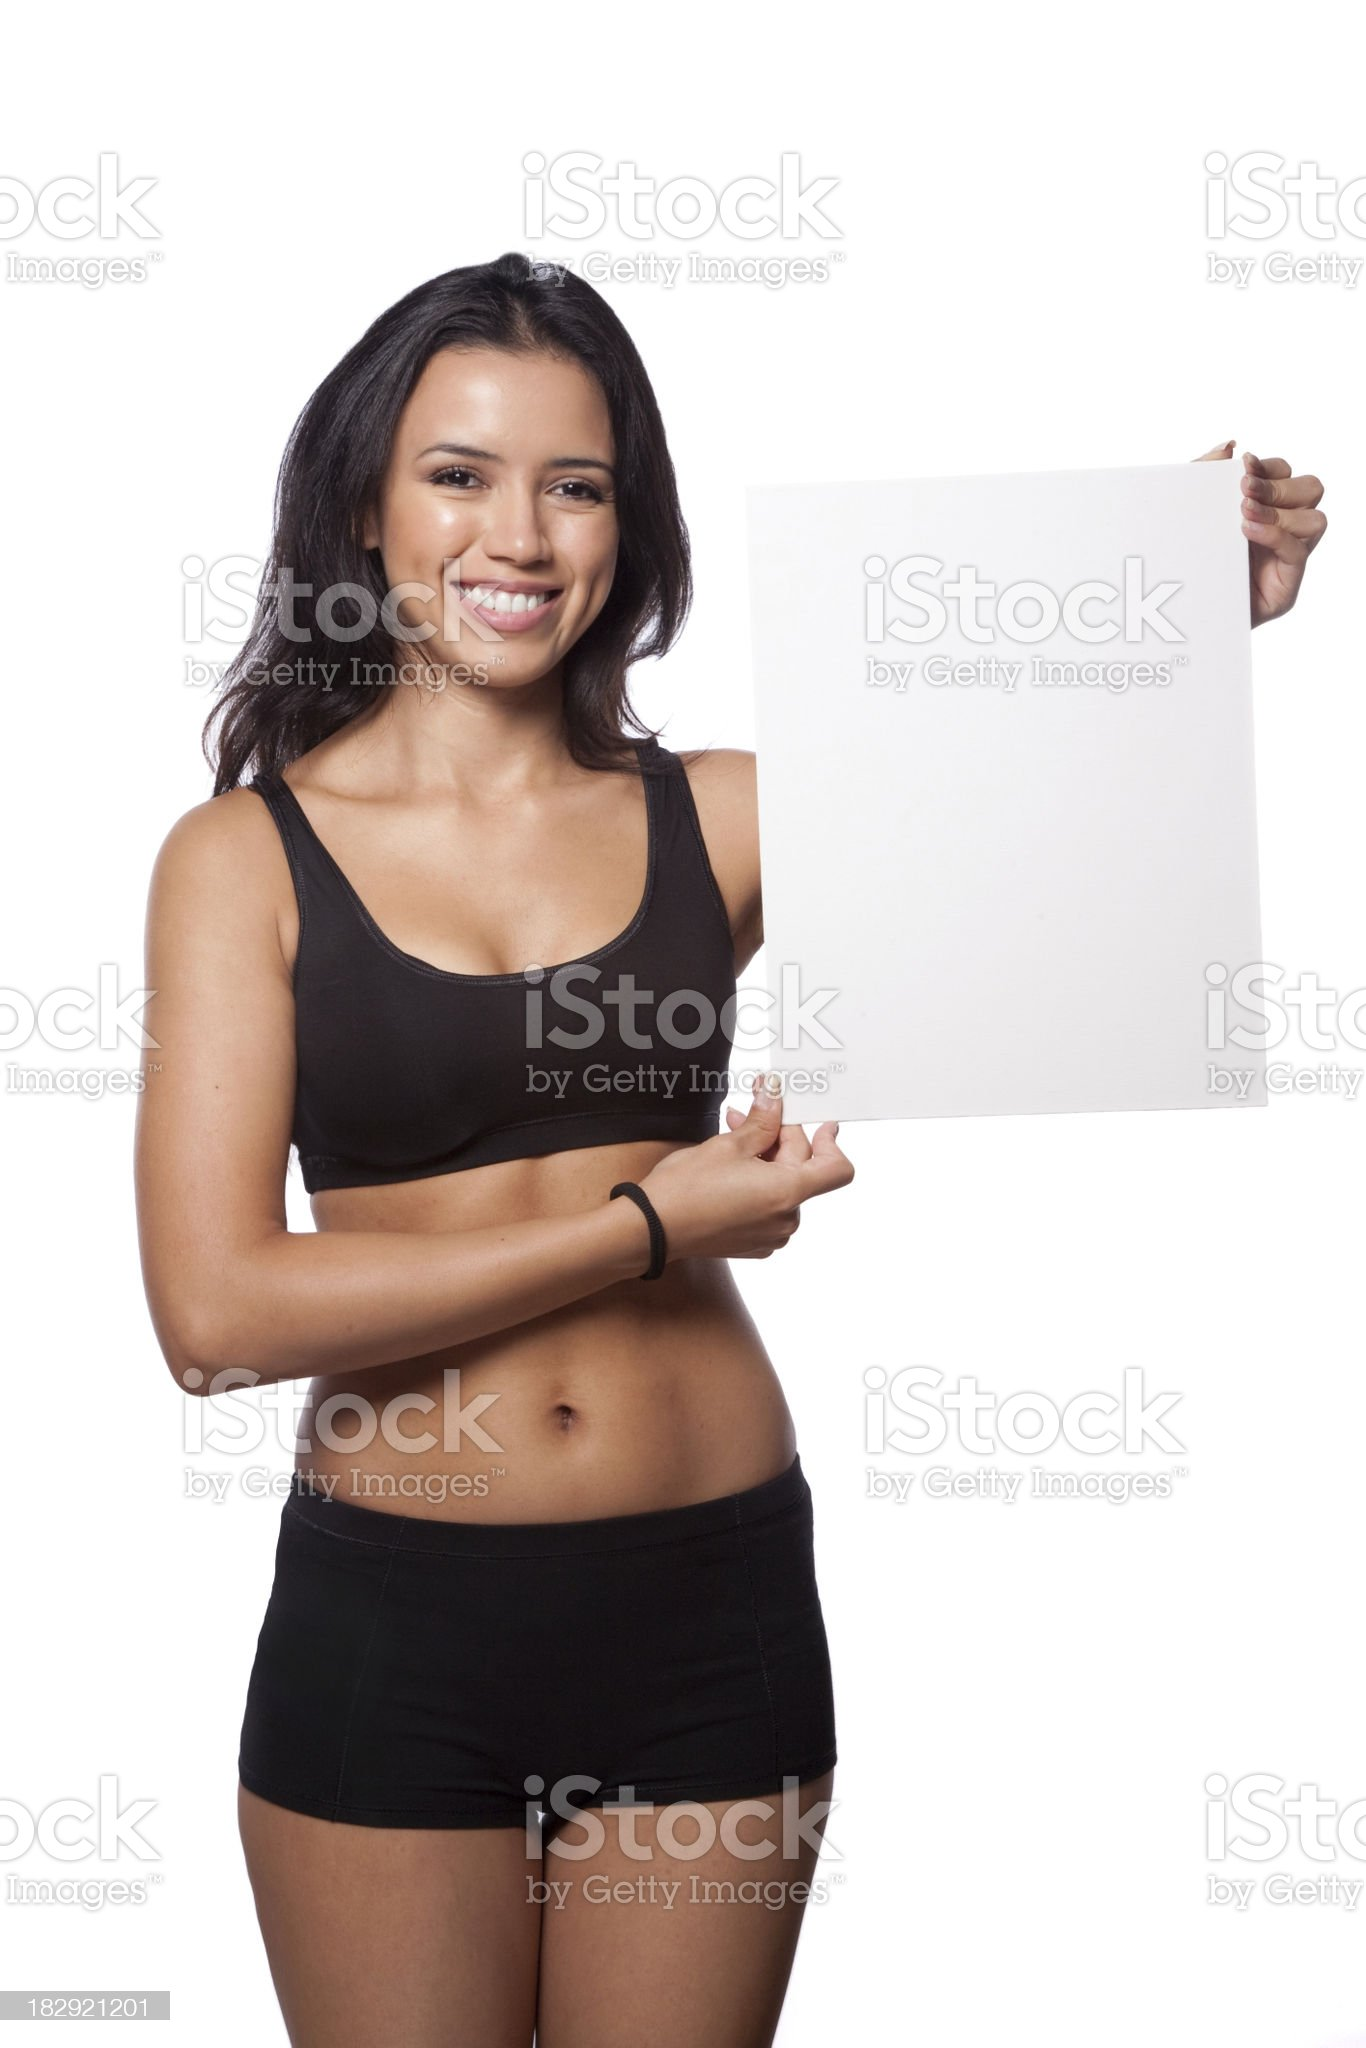 Fitness woman holding a blank sign royalty-free stock photo